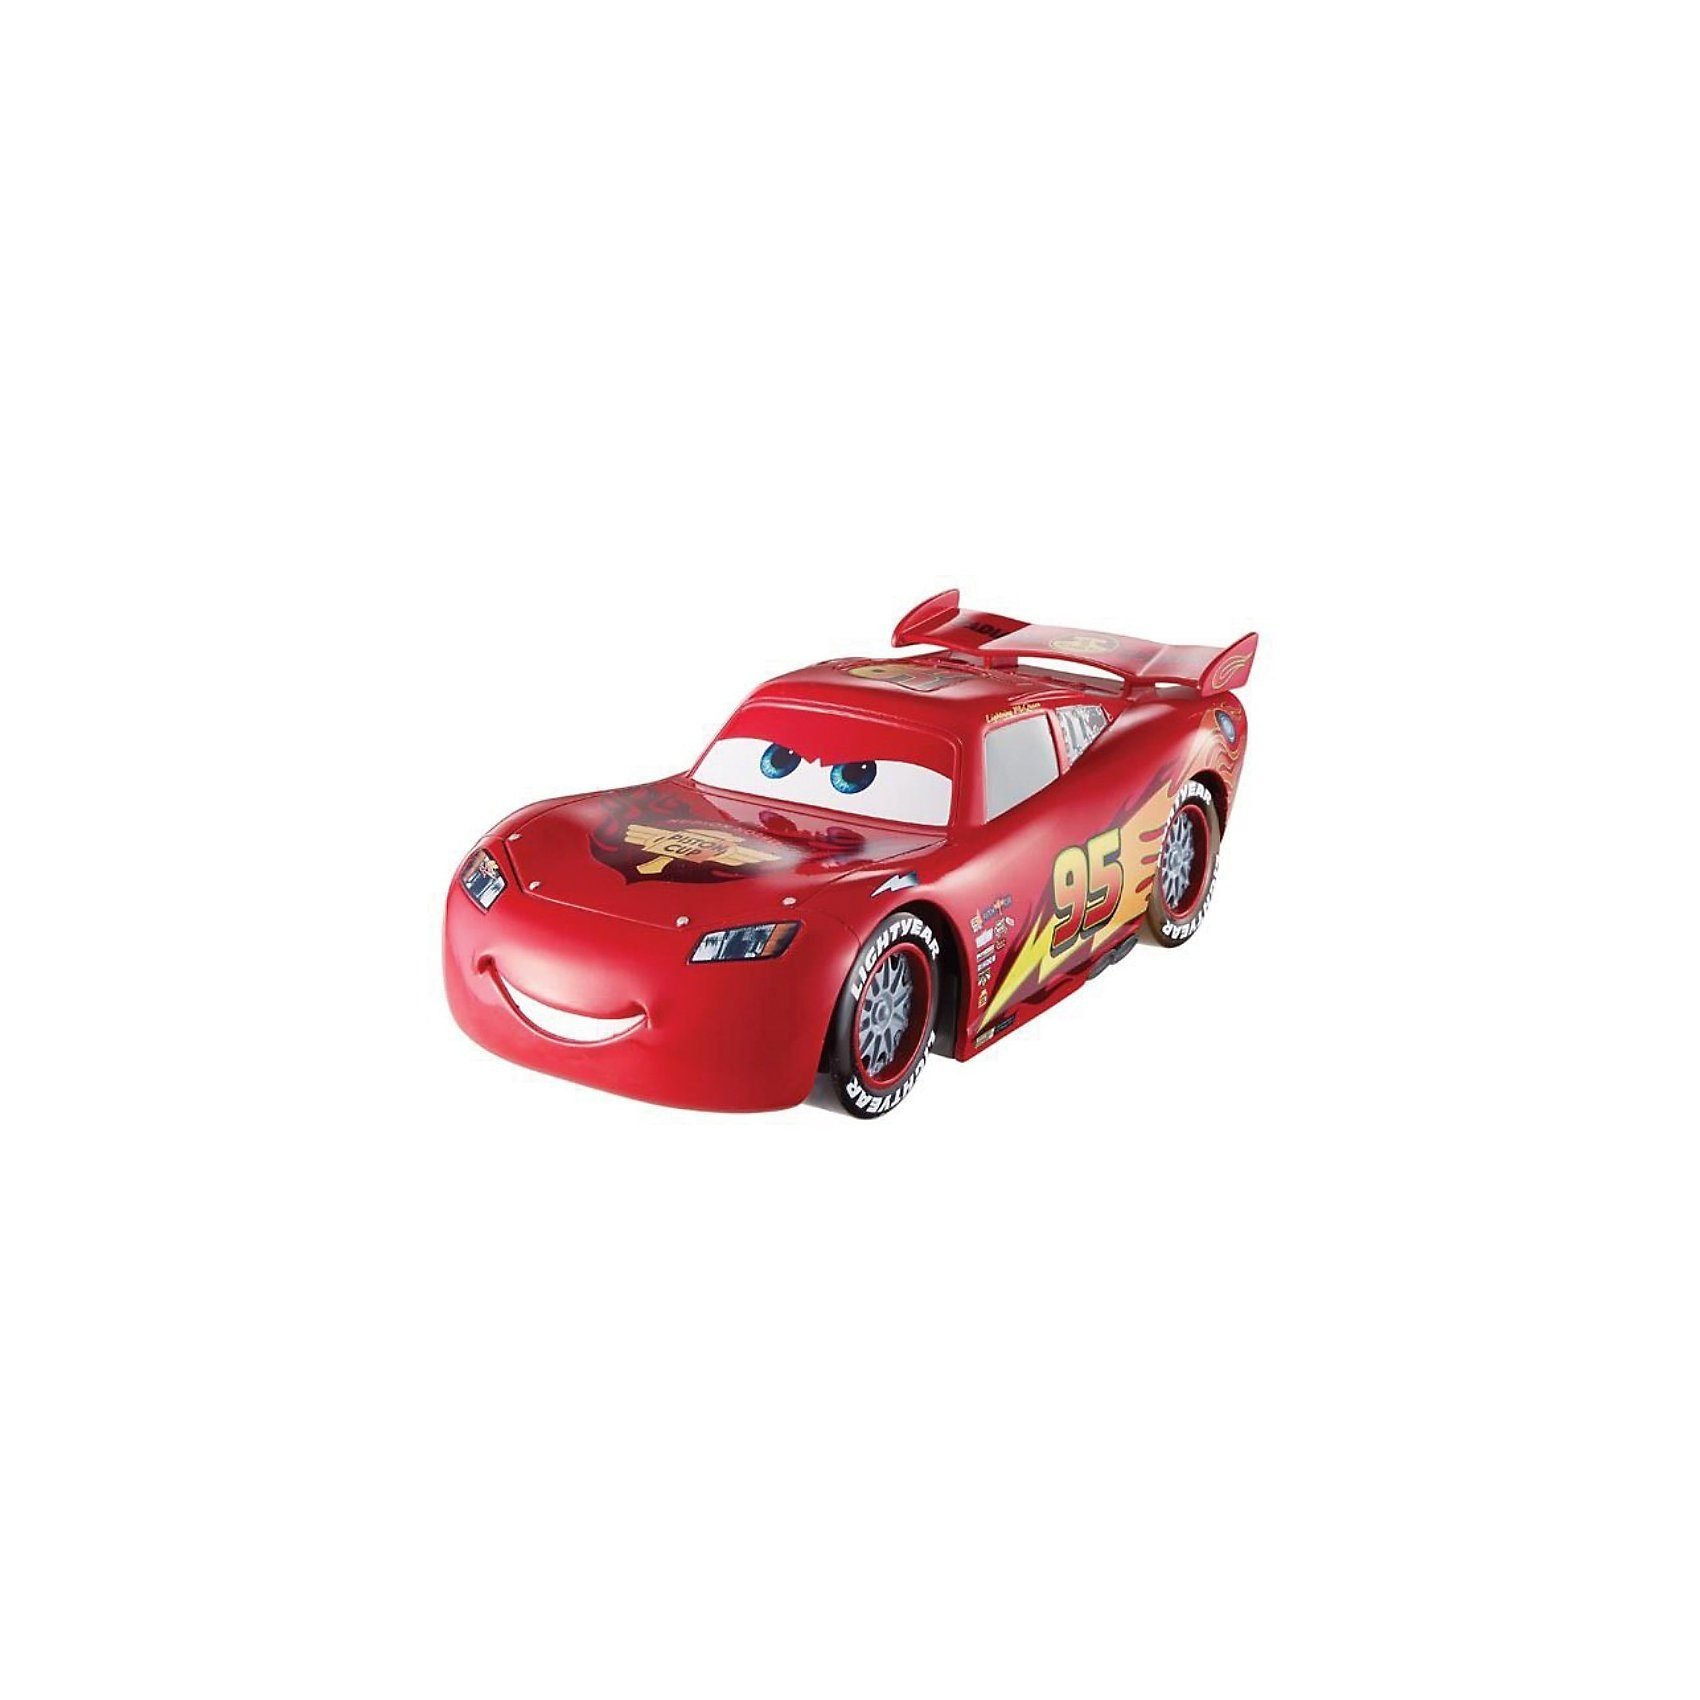 Mattel Burn-Out Reifen Lightning McQueen